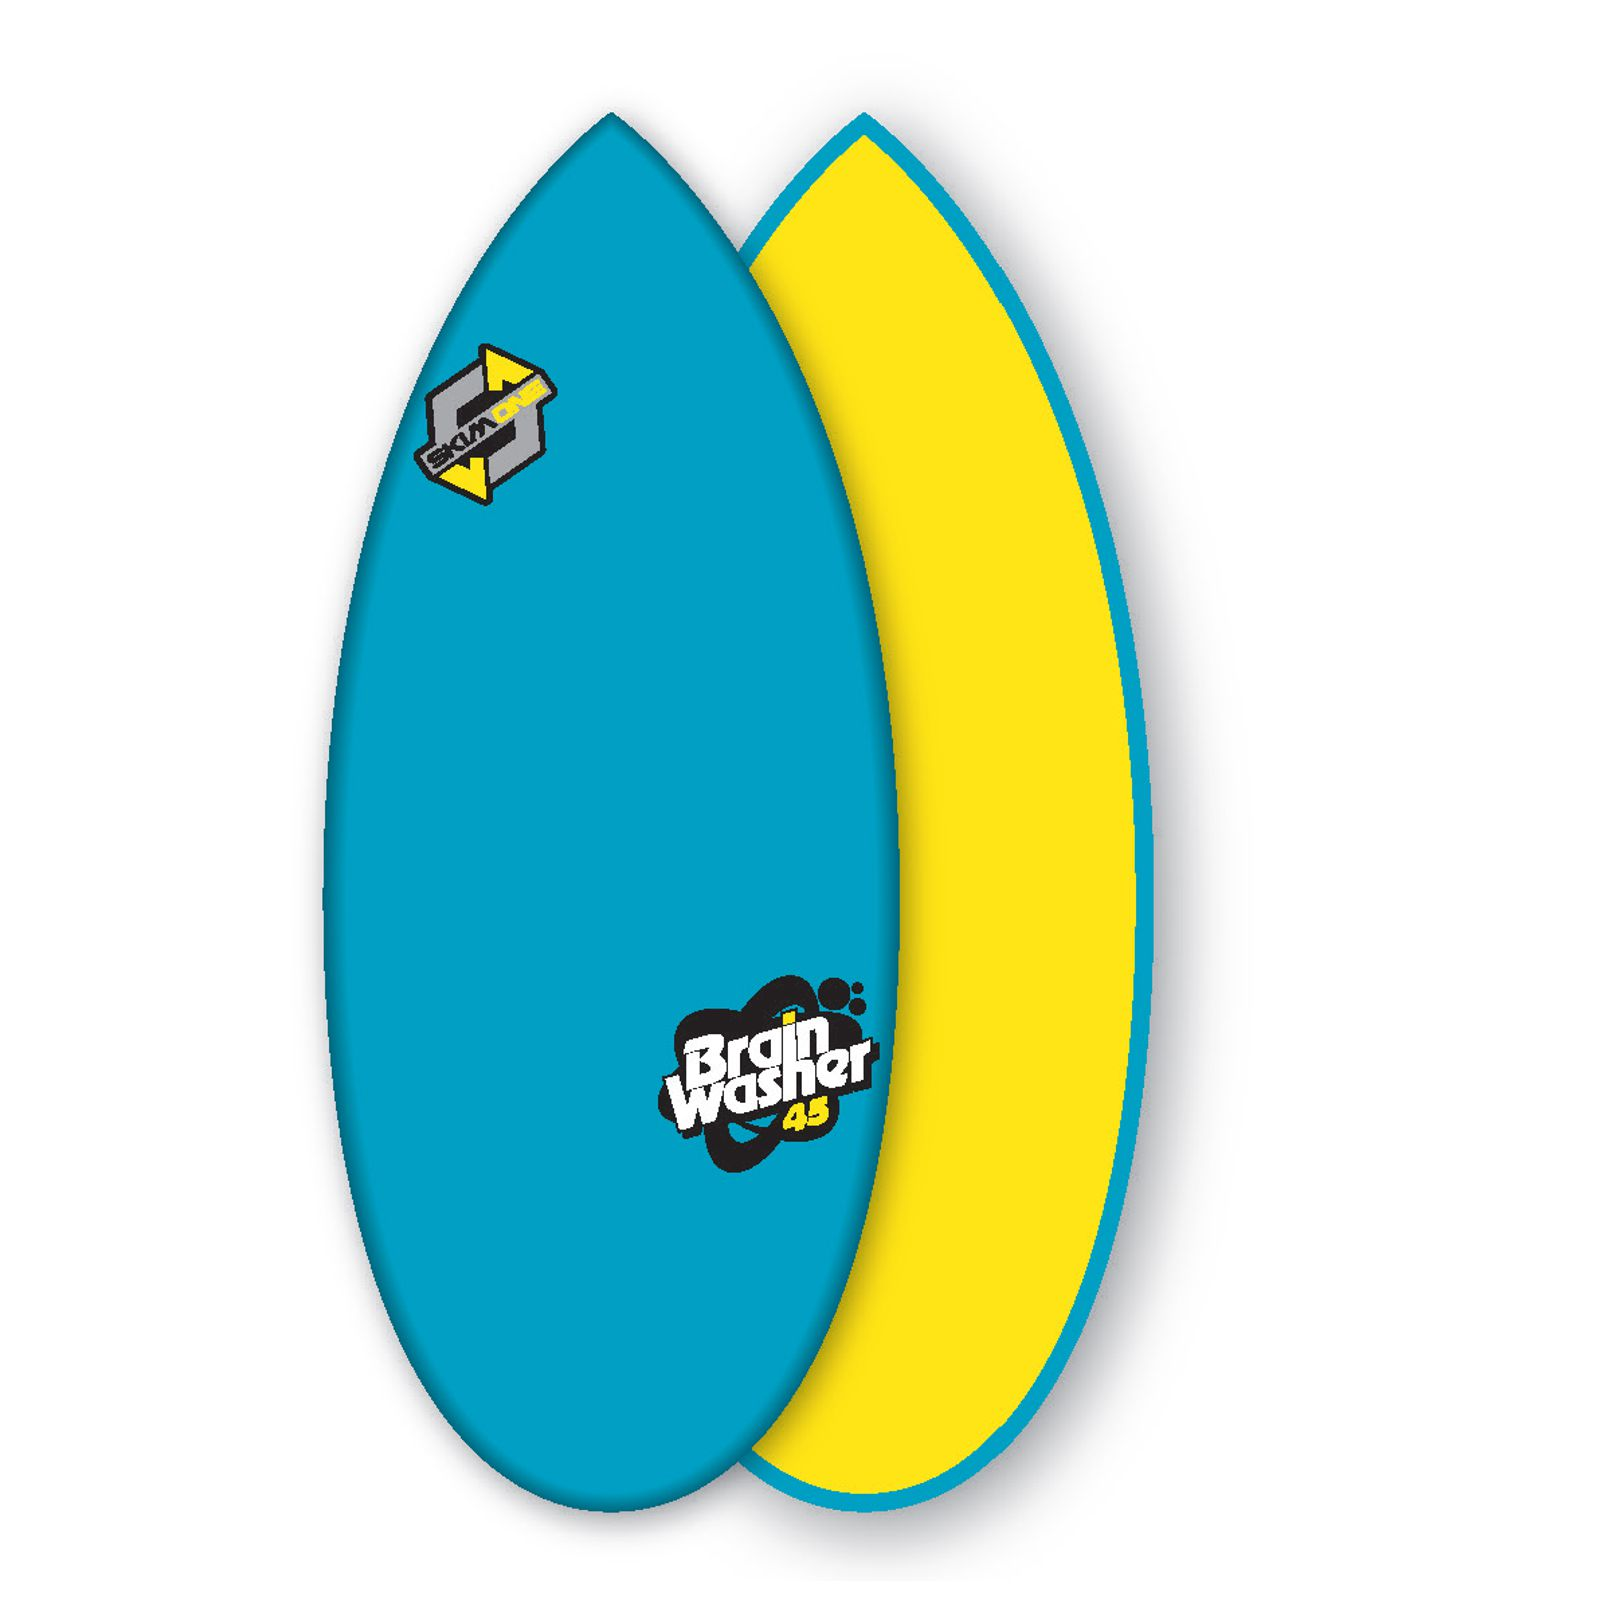 BMJ45044 Skimboard SkimOne EPS Epoxy 45 Brain Wash